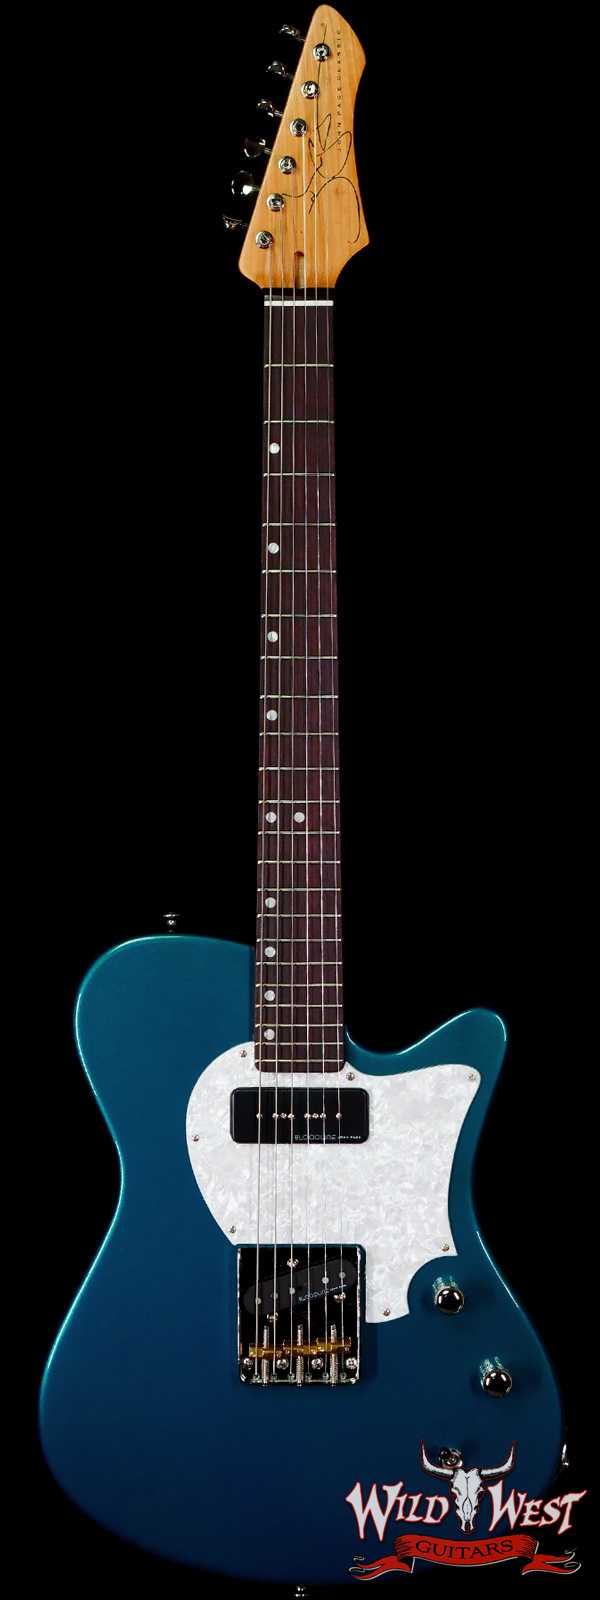 John Page Classic USA AJ P90 Rosewood Fingerboard Candy Apple Teal